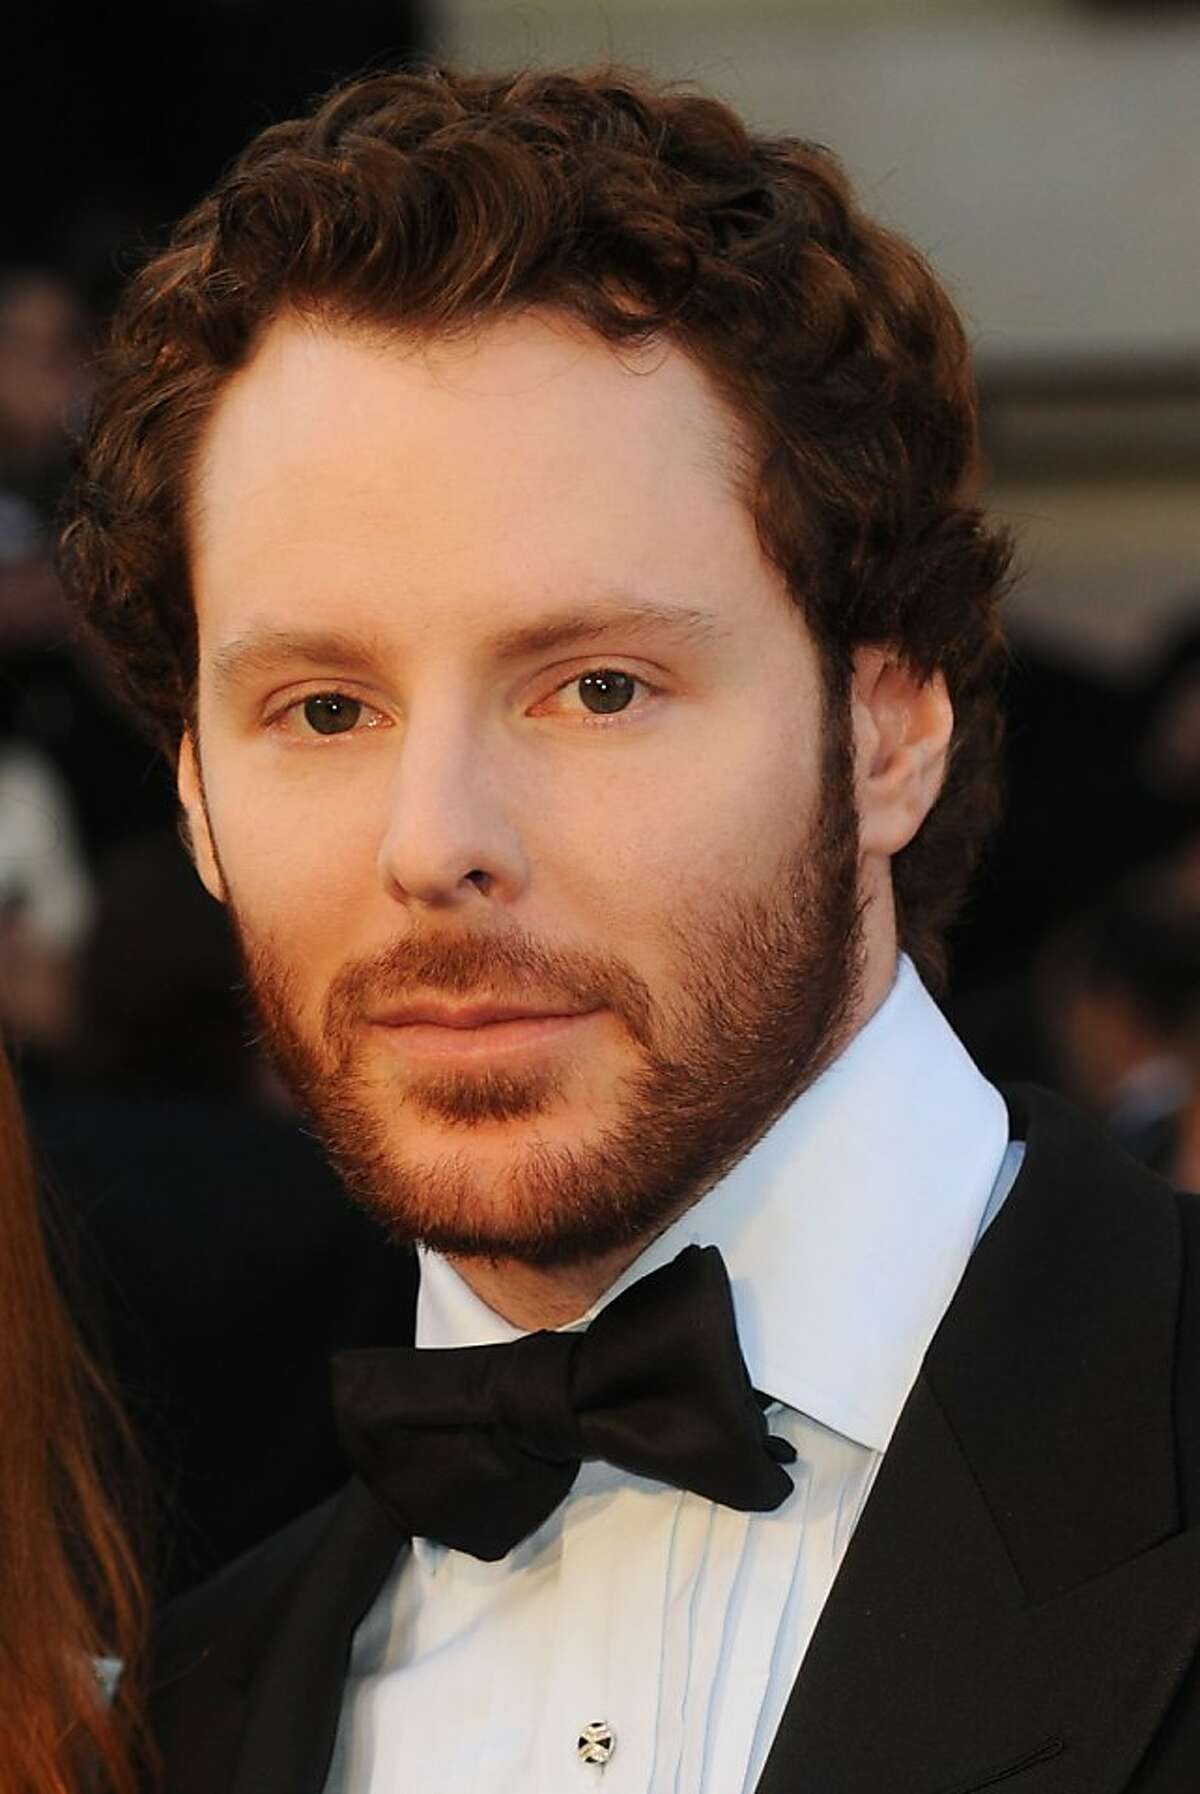 HOLLYWOOD, CA - FEBRUARY 27: Sean Parker arrives at the 83rd Annual Academy Awards held at the Kodak Theatre on February 27, 2011 in Hollywood, California.